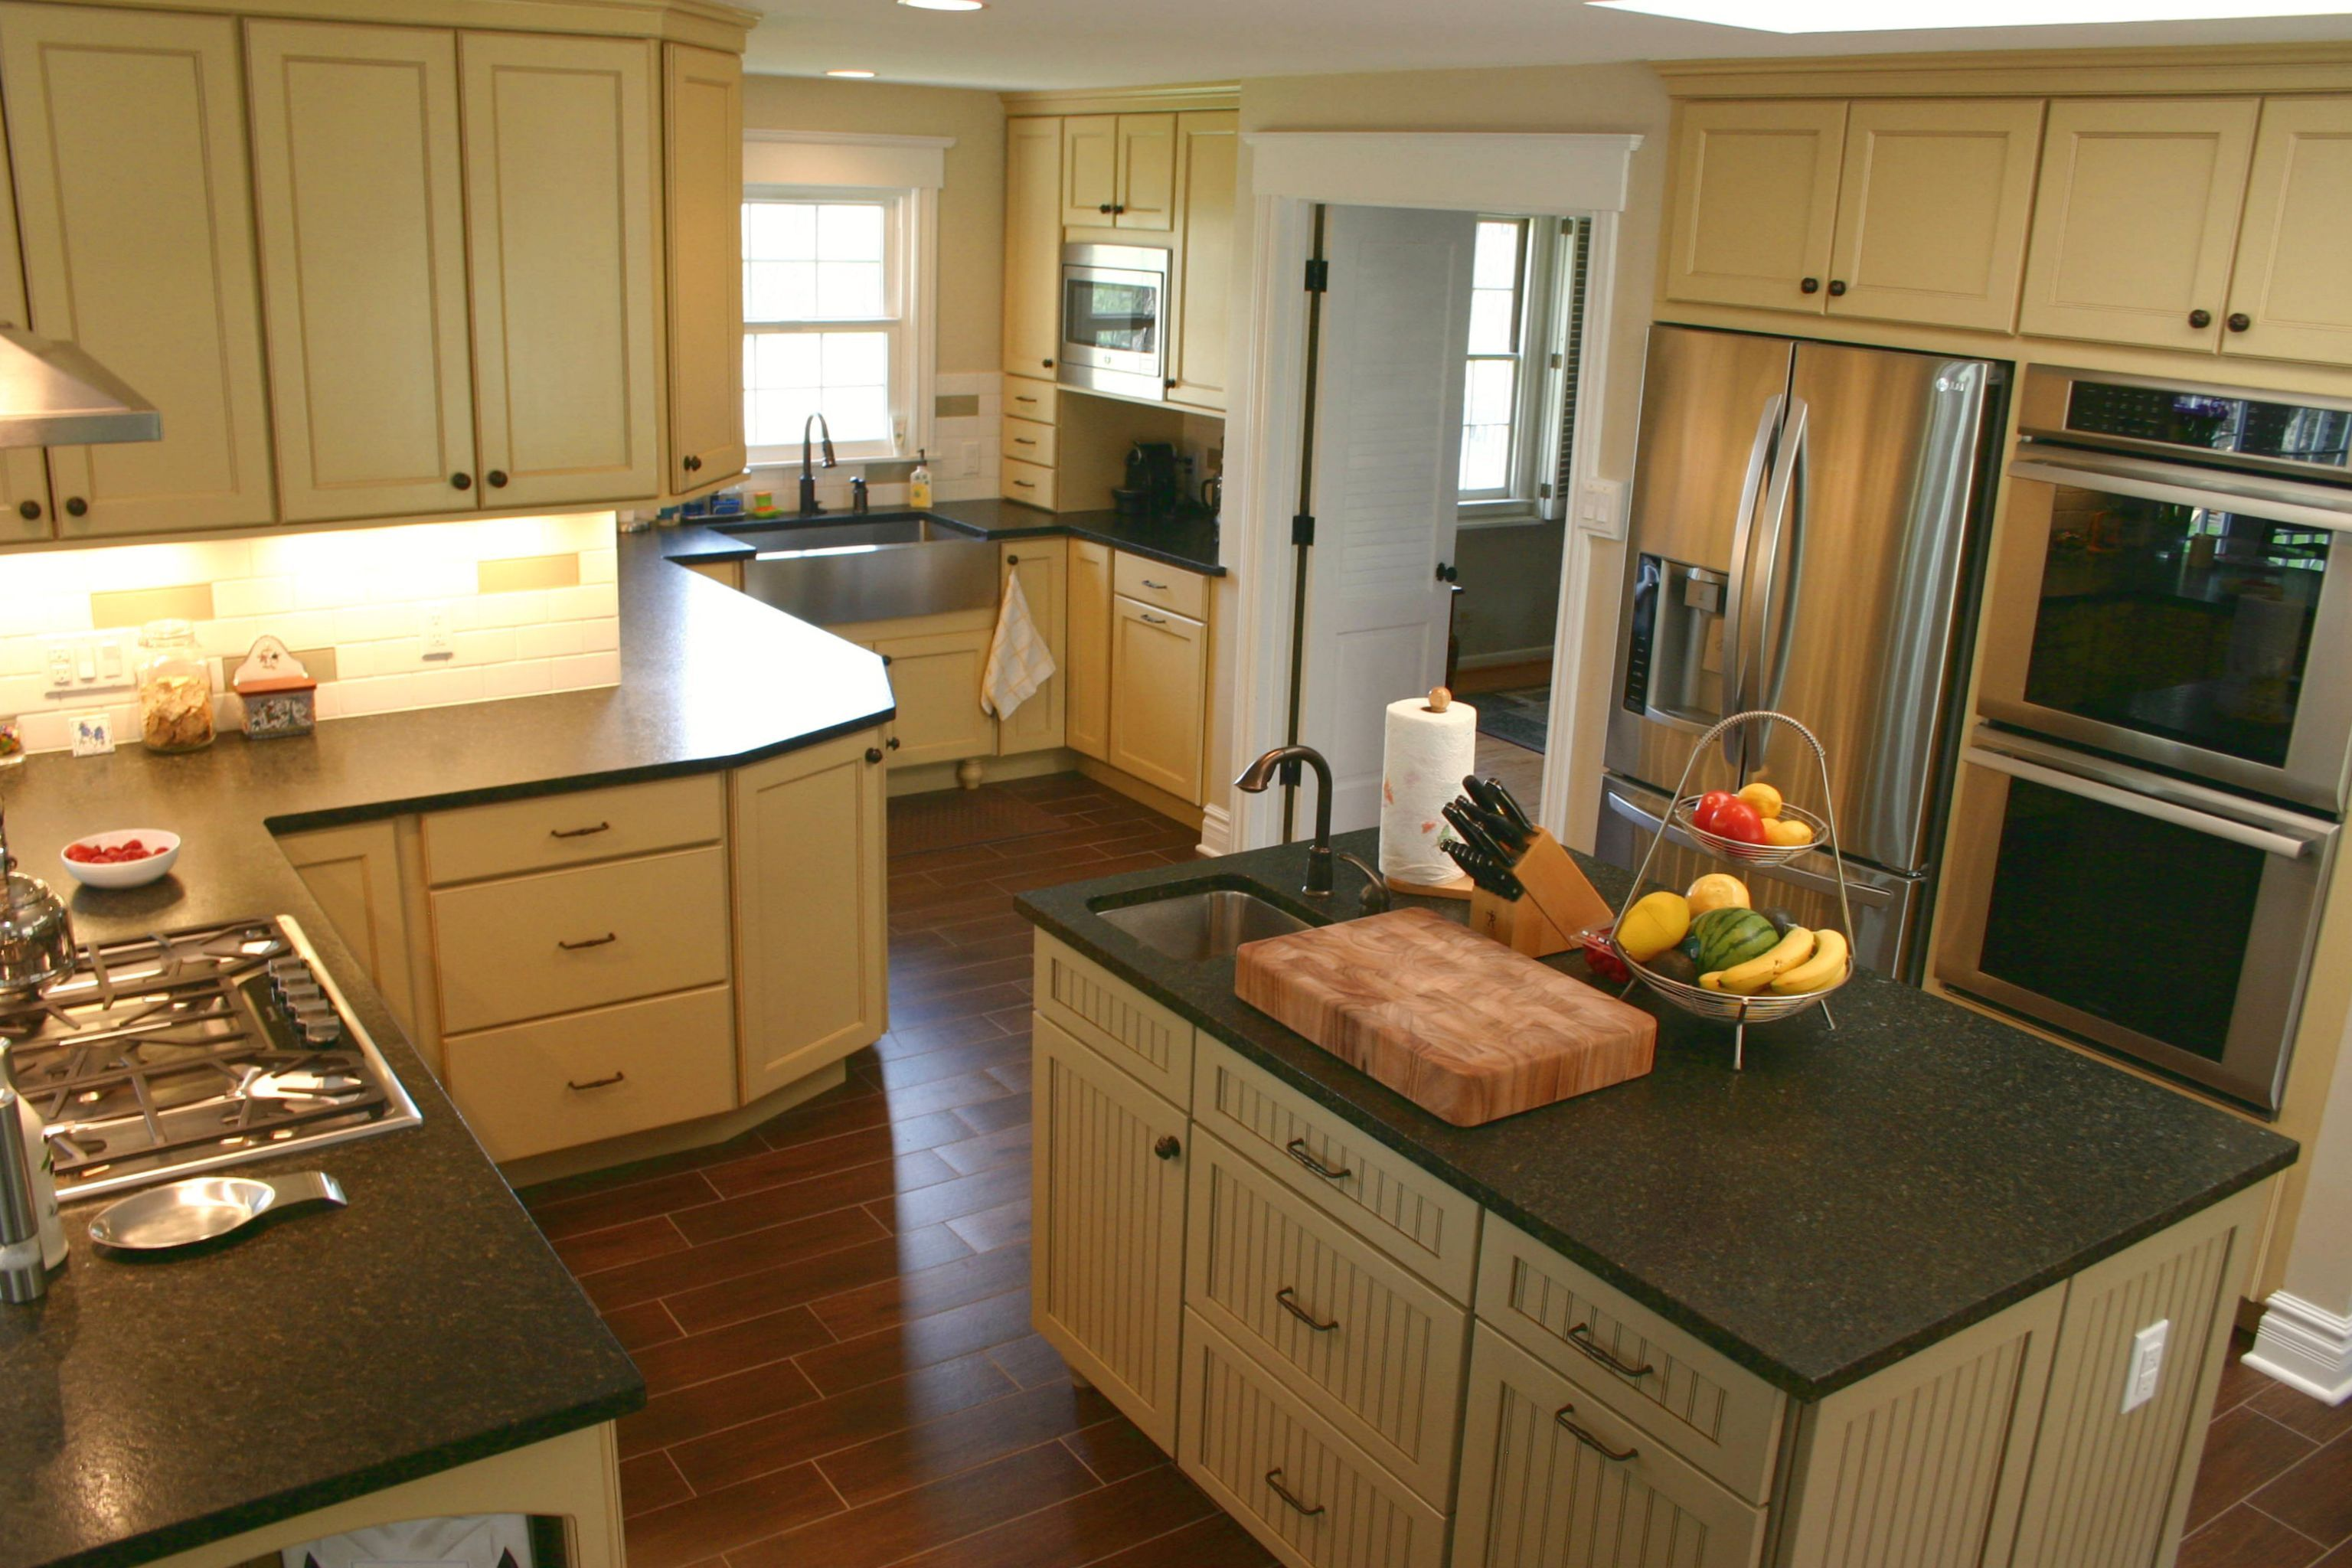 Bkc Kitchen And Bath Kitchen Remodel Perimeter Cabinetry  Mid New Bathroom Kitchen Remodeling Review